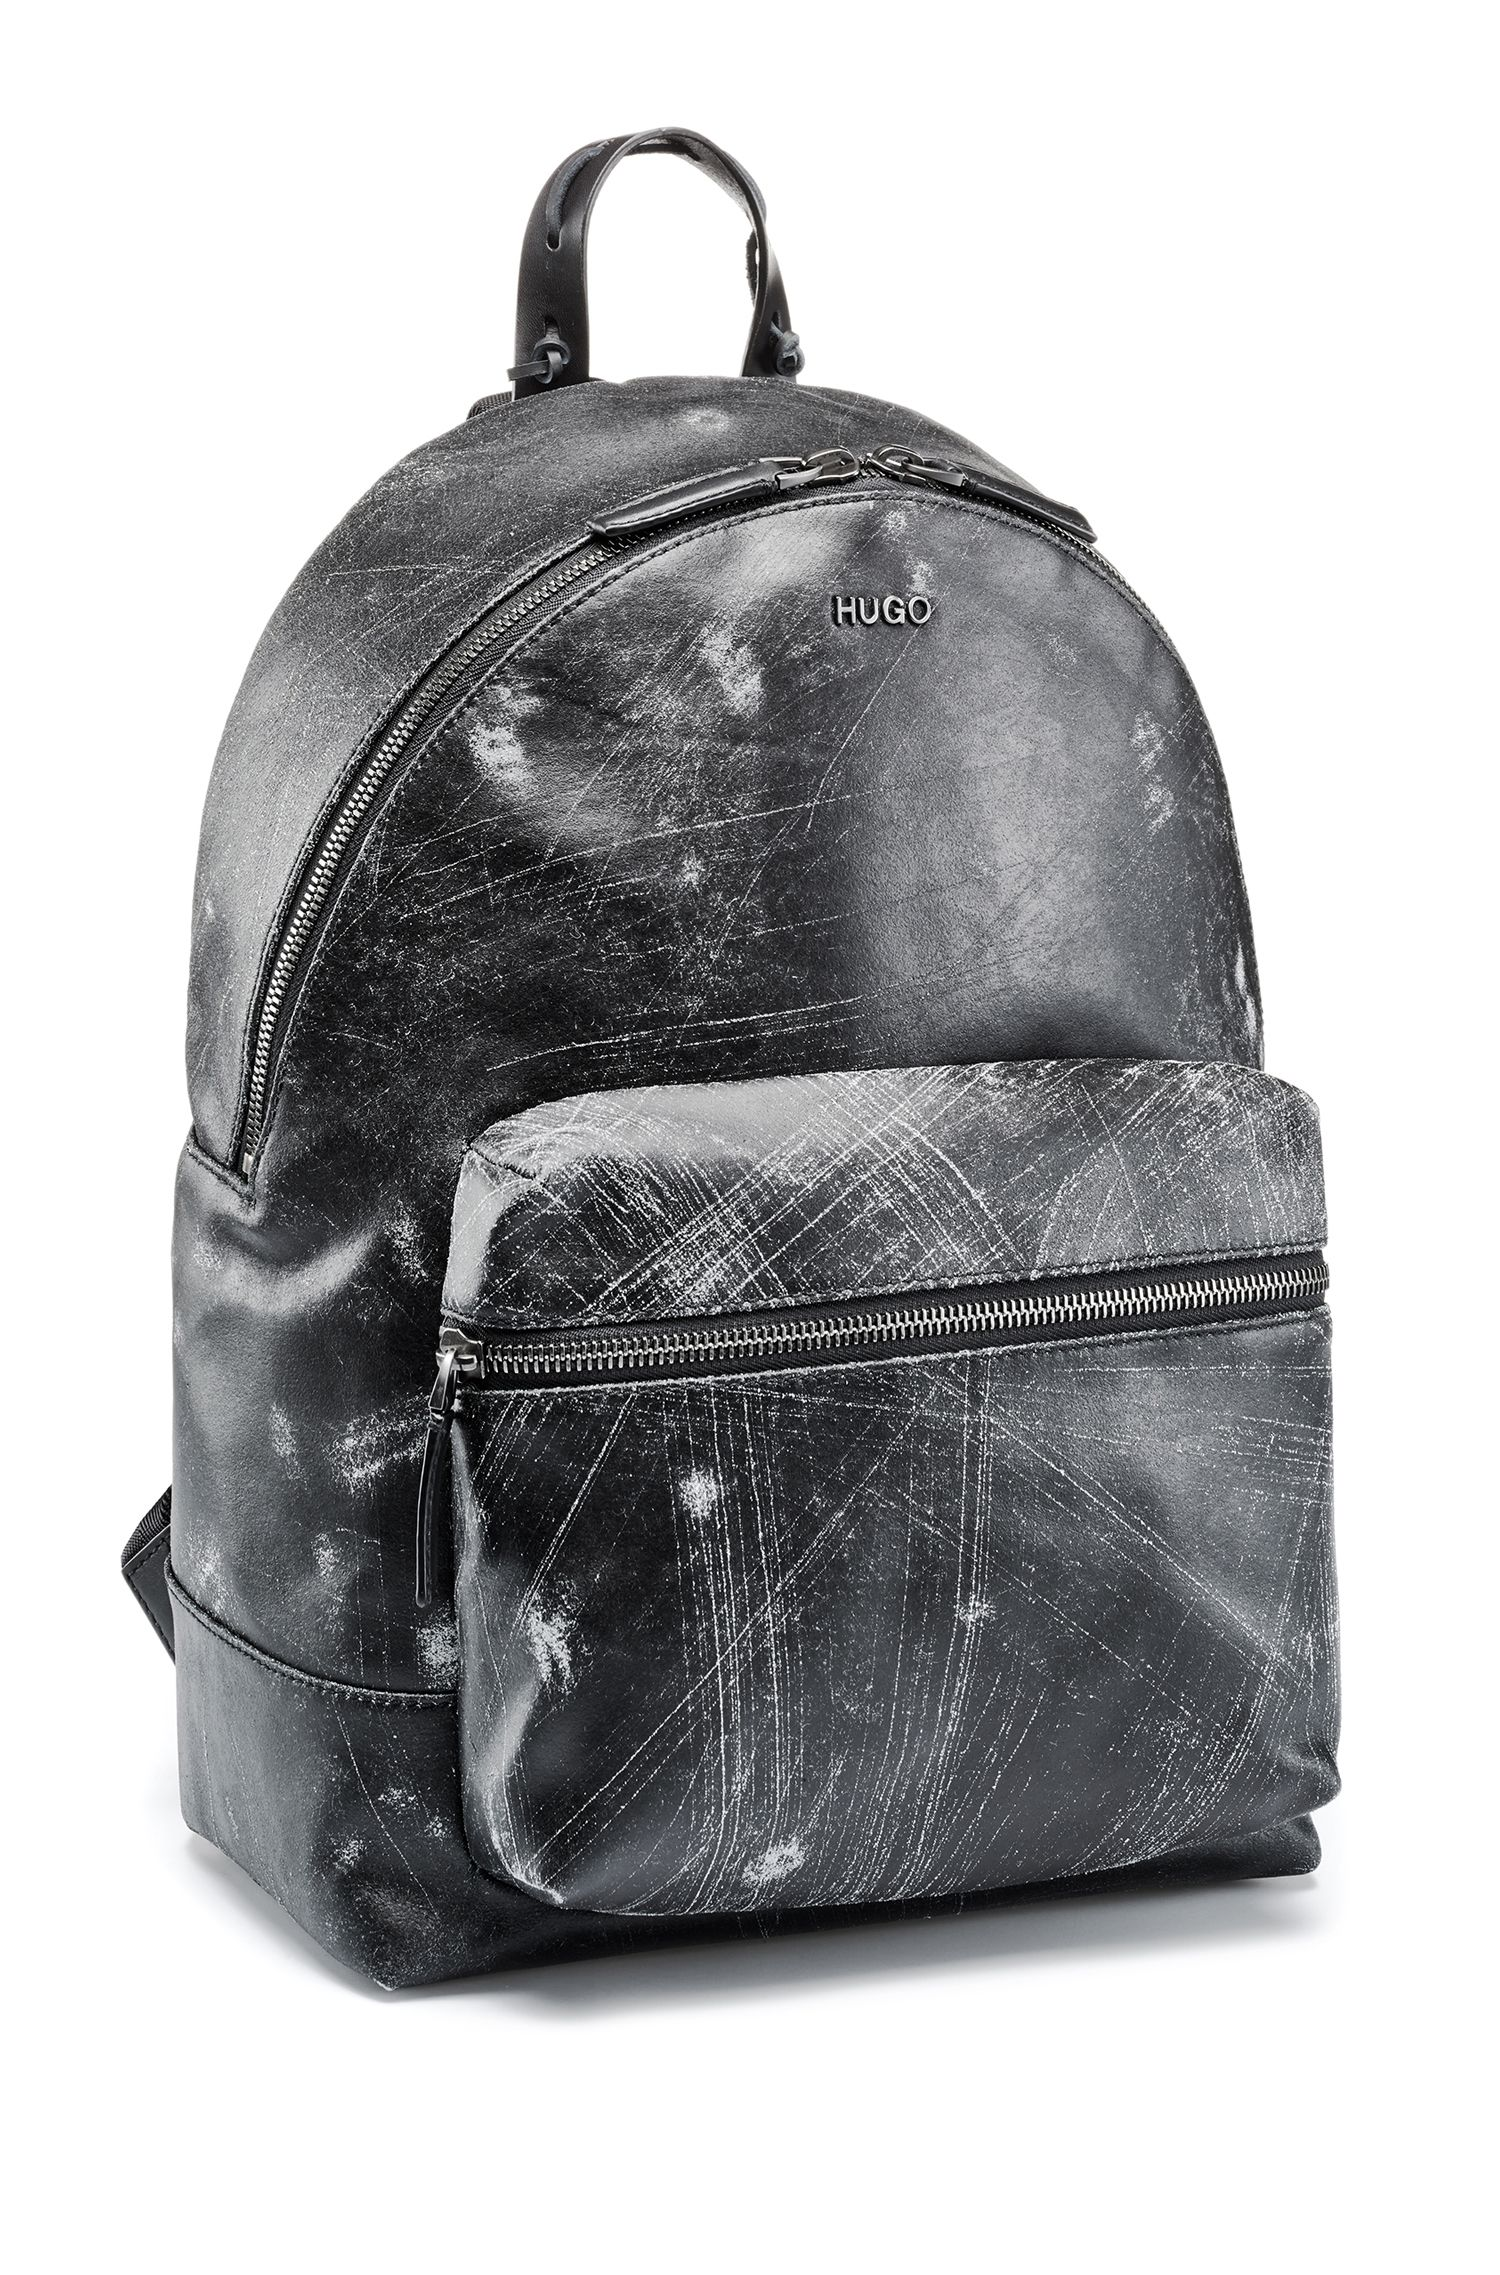 Distressed Leather Backpack | Abstract Backpack